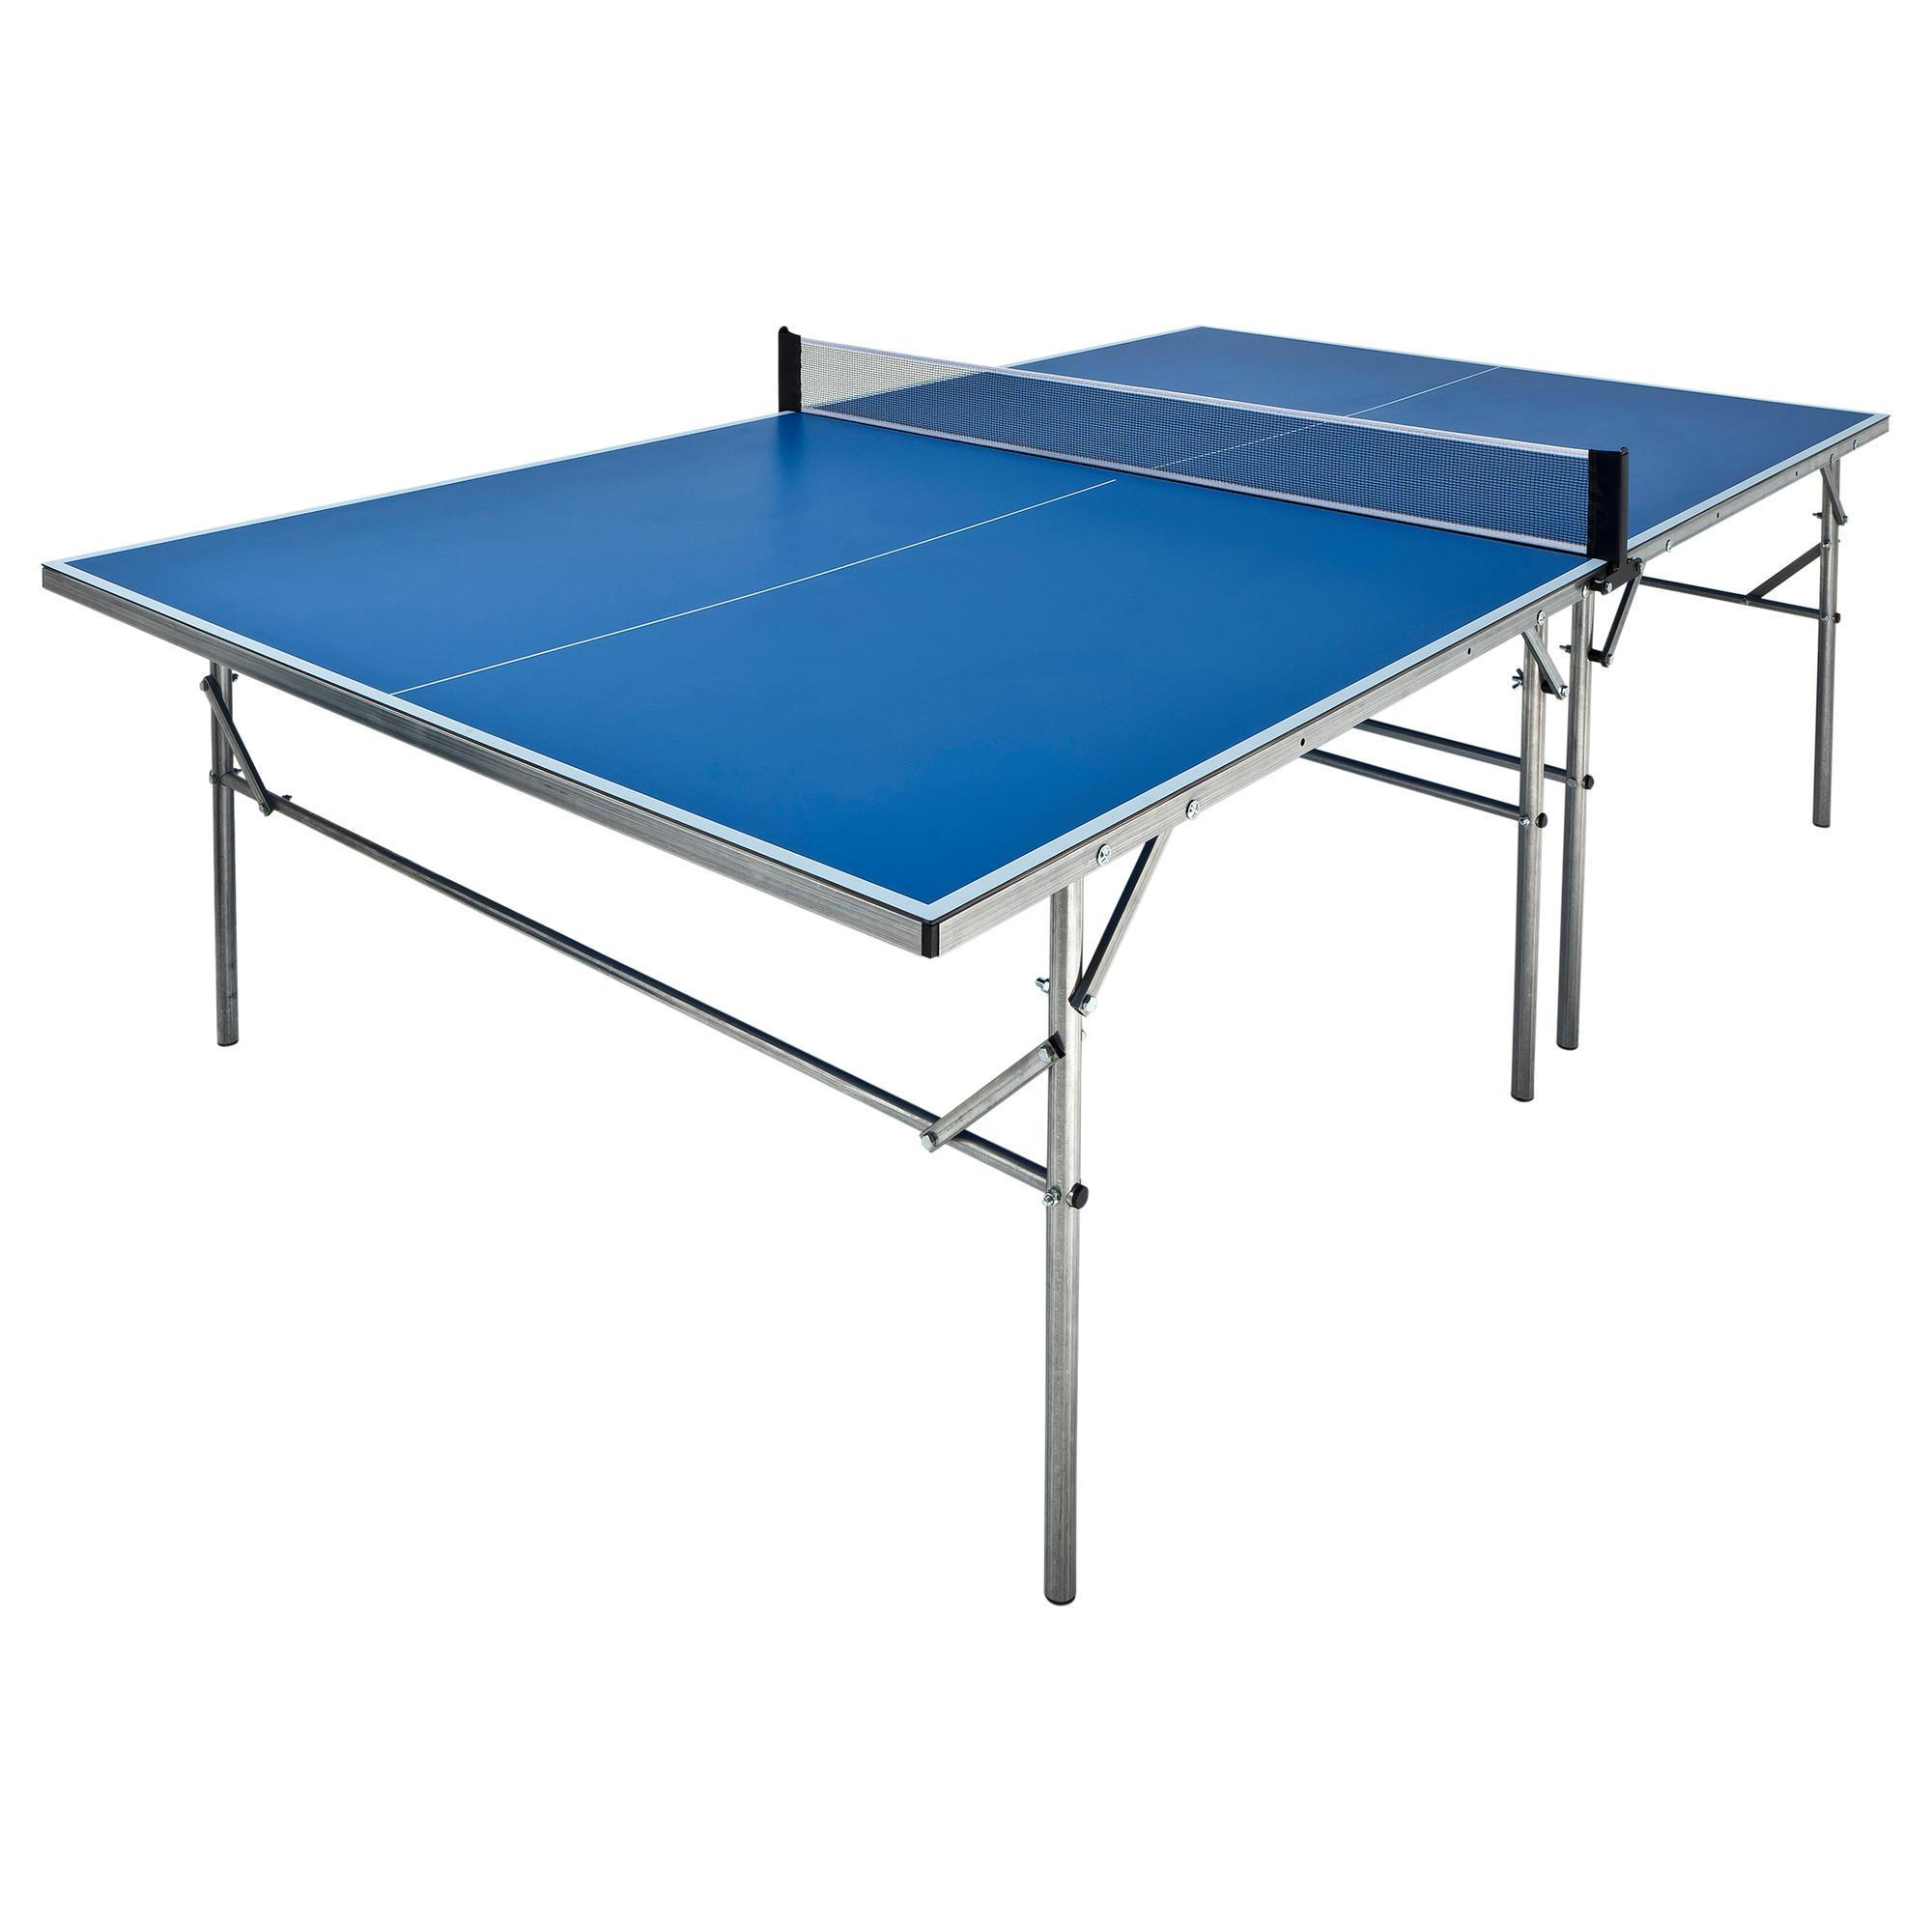 Solde Table De Ping Pong Table Ping Pong Outdoor Ft720 Tennis De Table Artengo